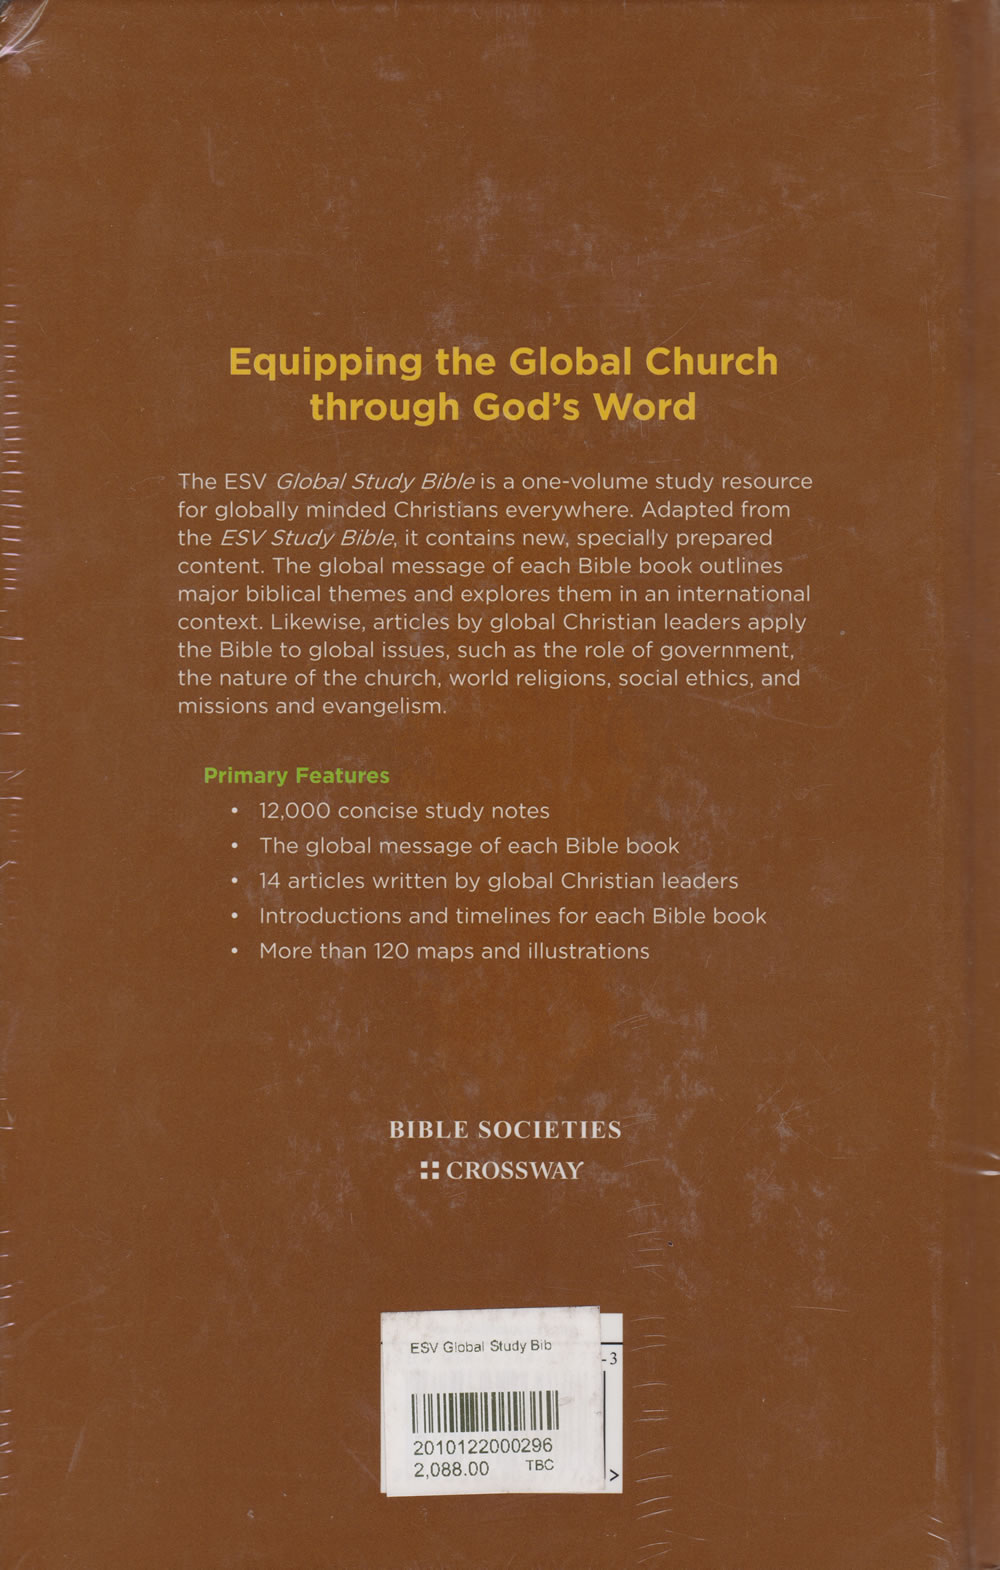 ESV Global Study Bible (Hardcover) | Books, Stationery, Computers, Laptops  and more  Buy online and get free delivery on orders above Ksh  2,000  Much